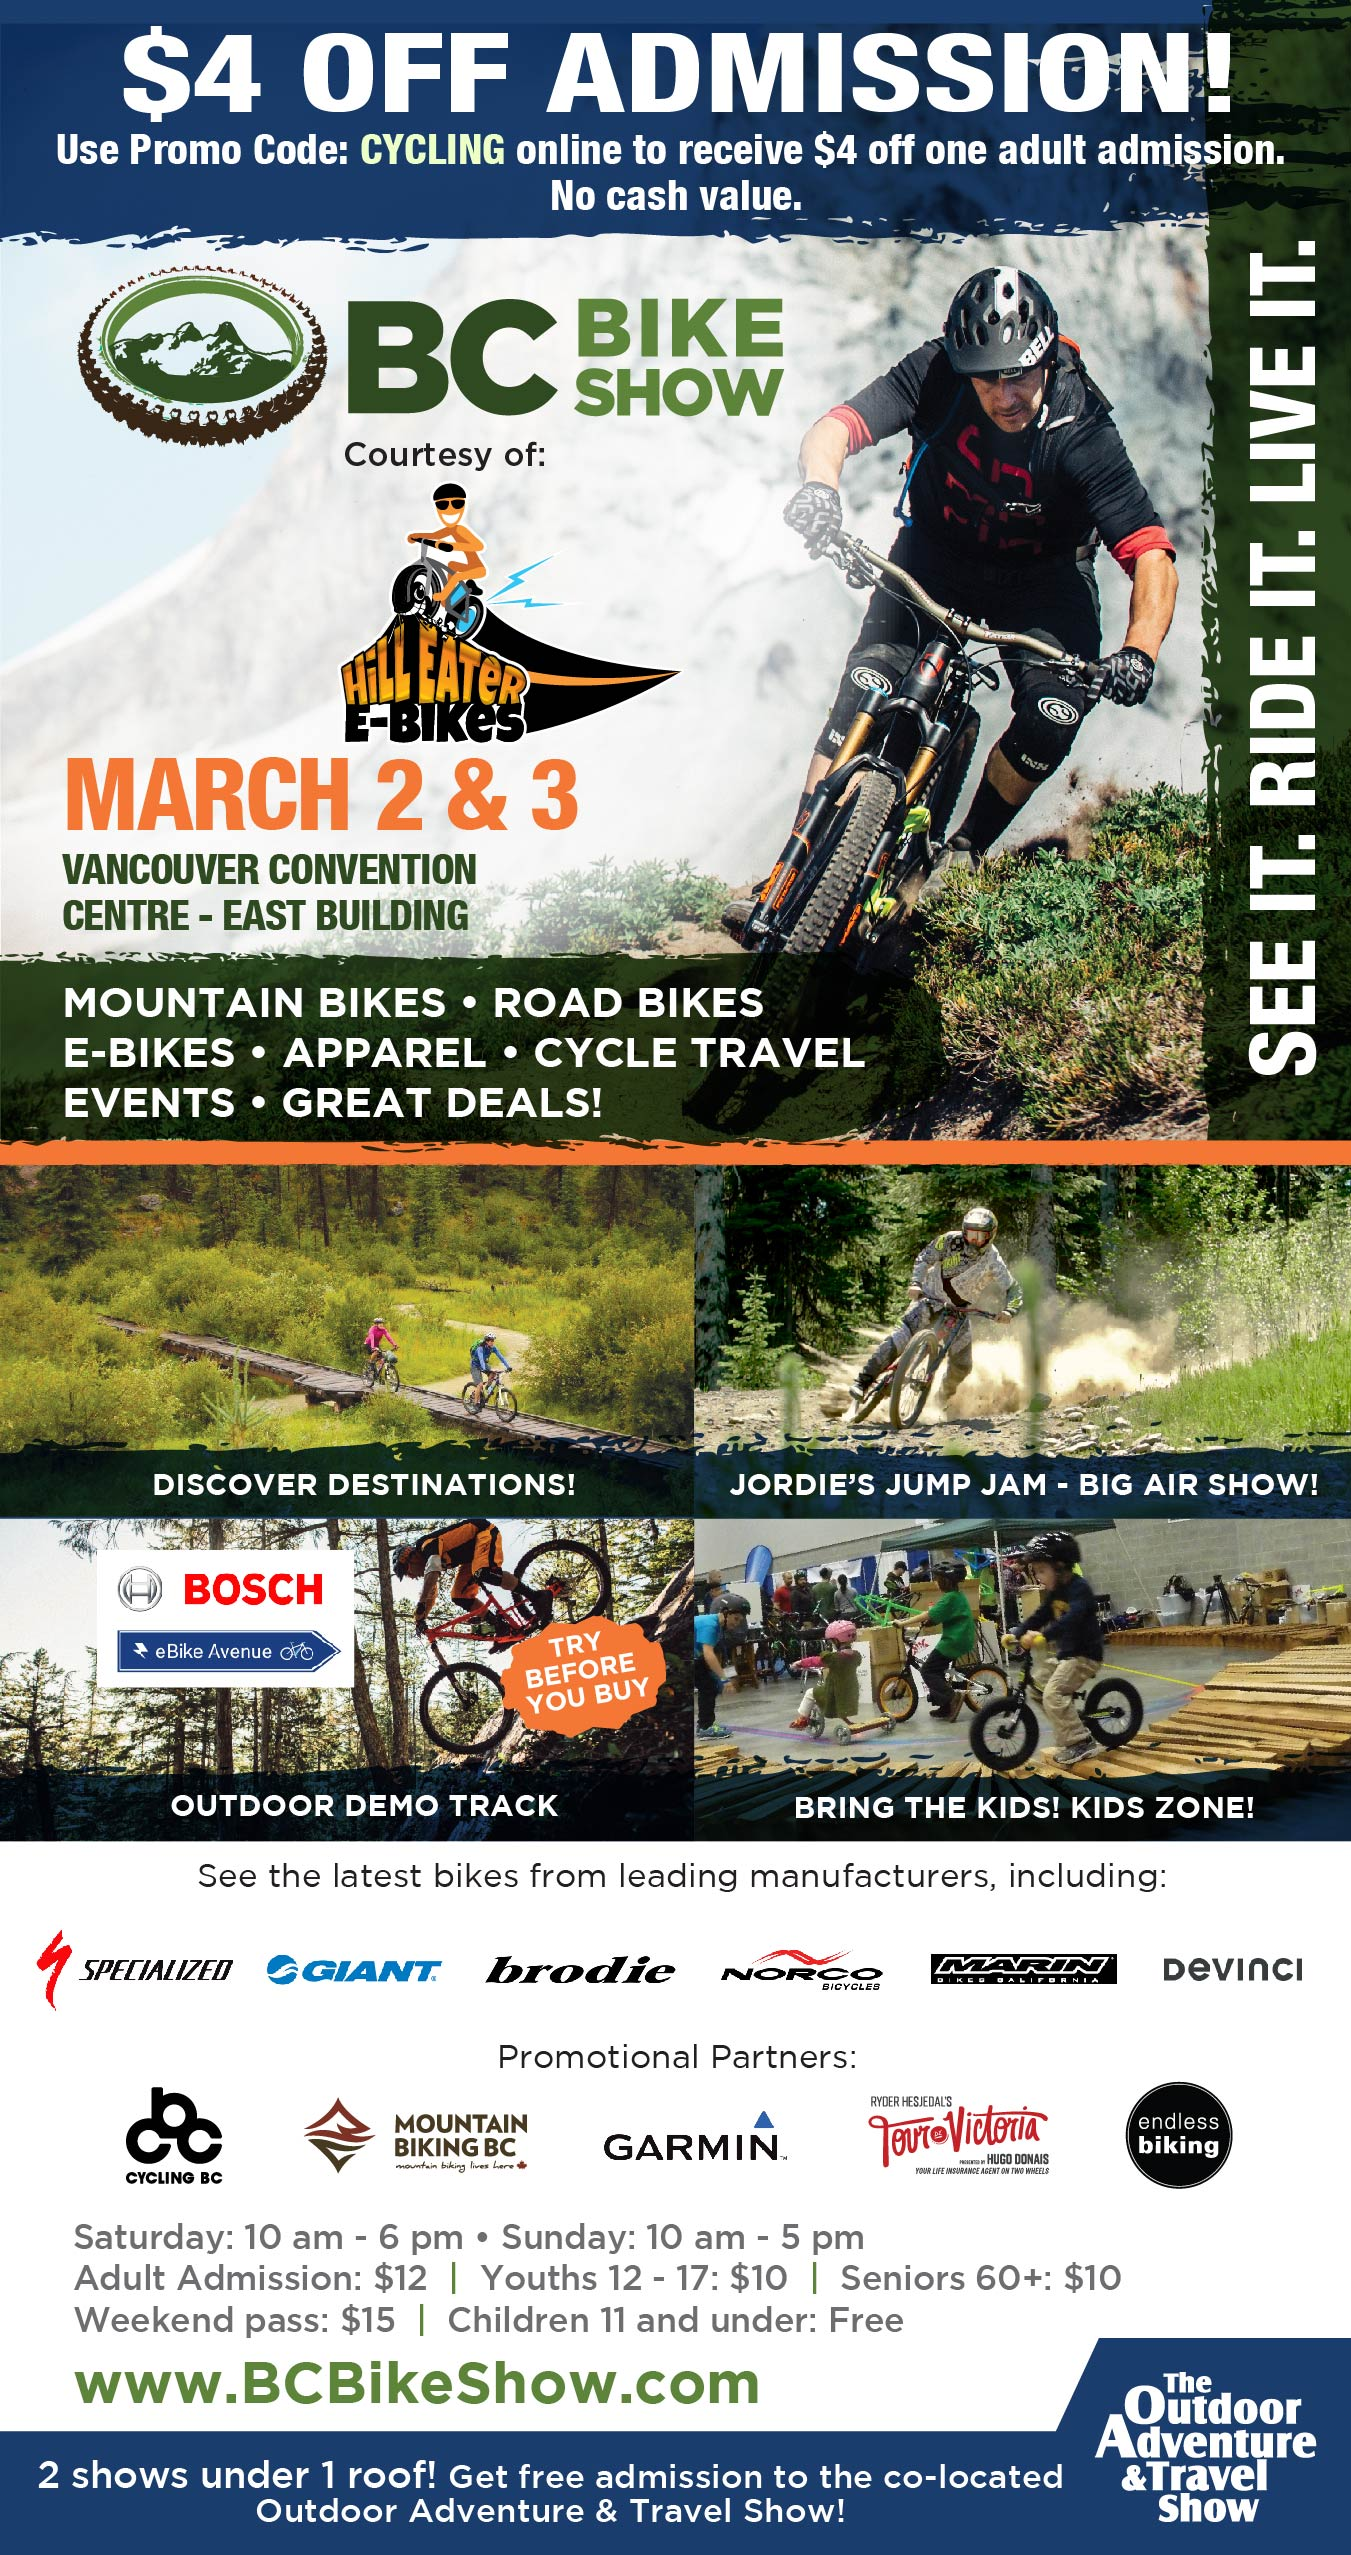 Vancouver Bike Show, new hilleater bikes, new products - Hilleater ca